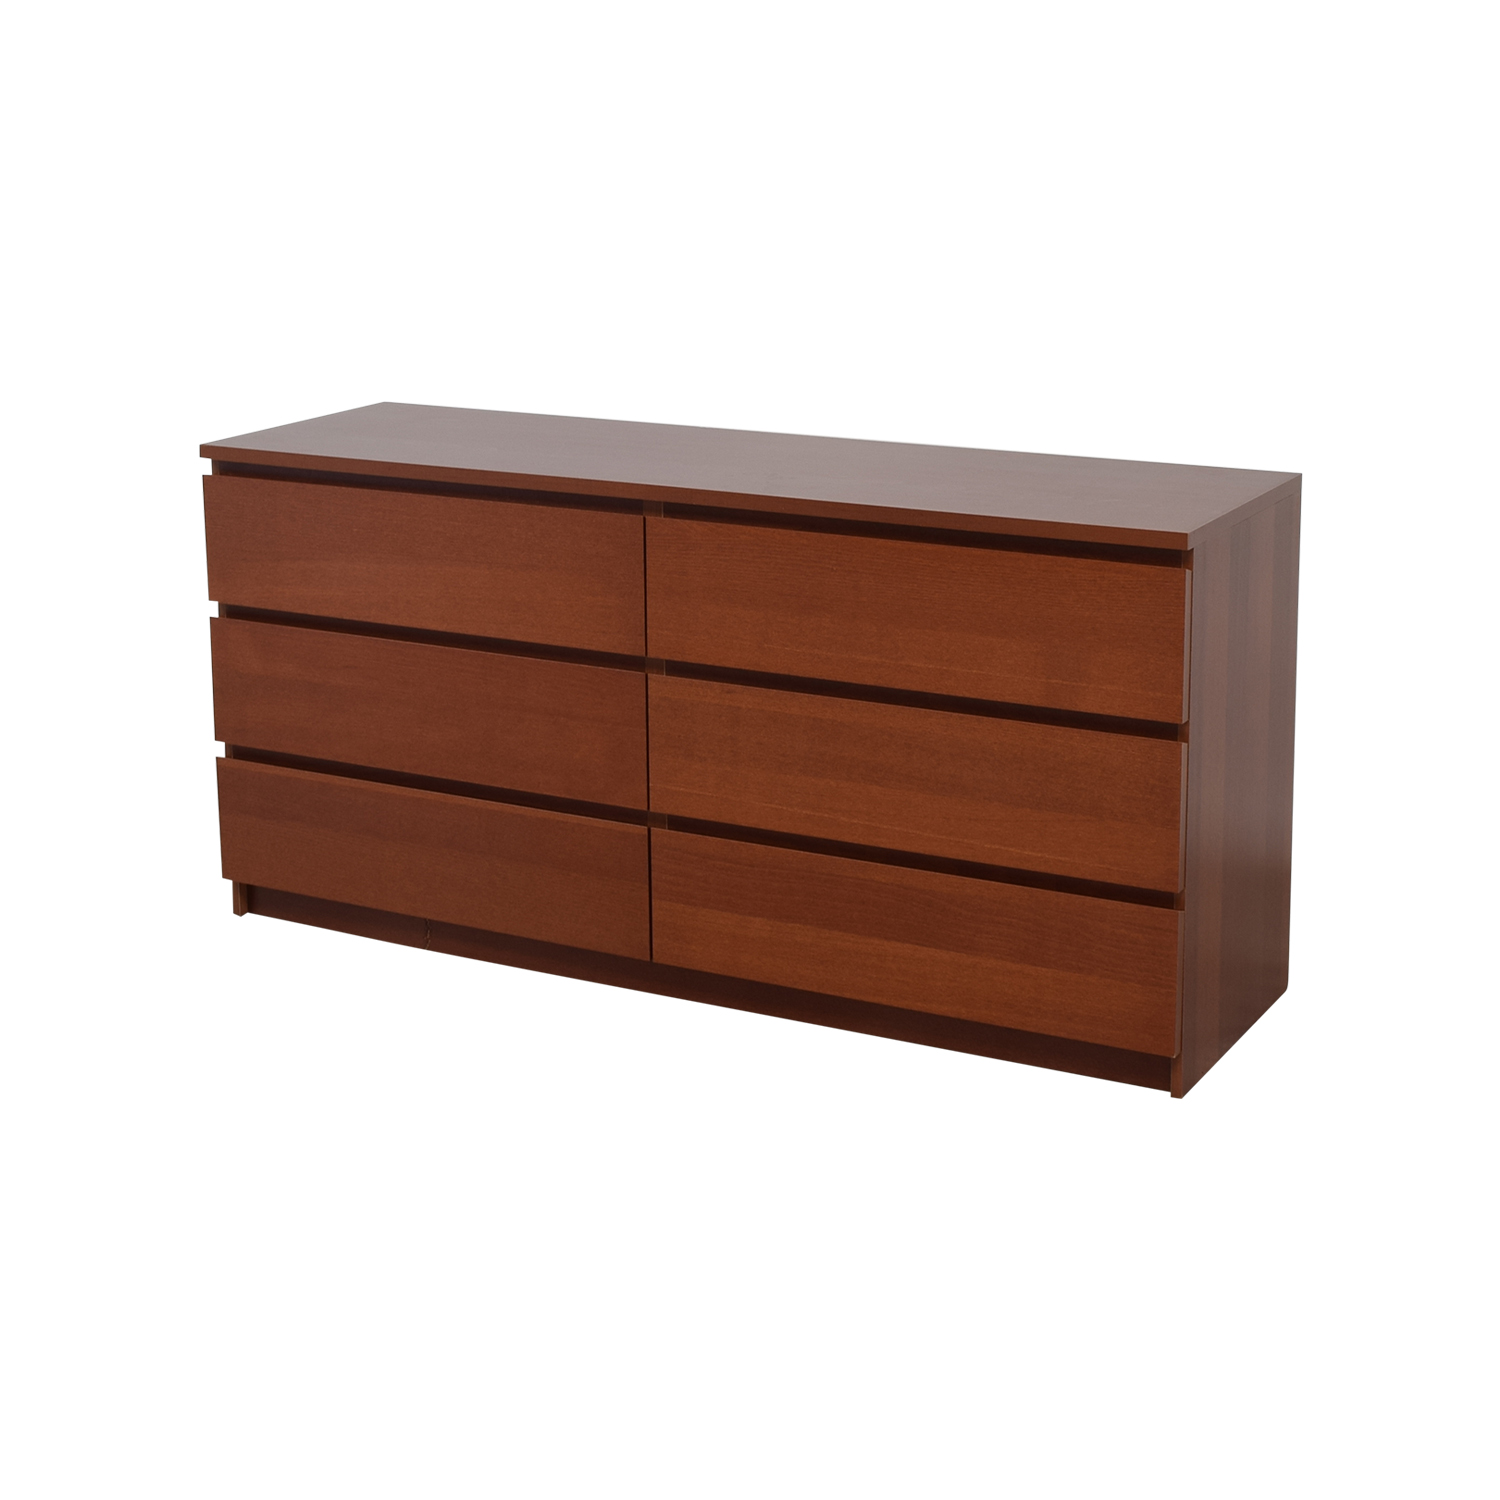 Malm Six Drawer Dresser Bestdressers 2017